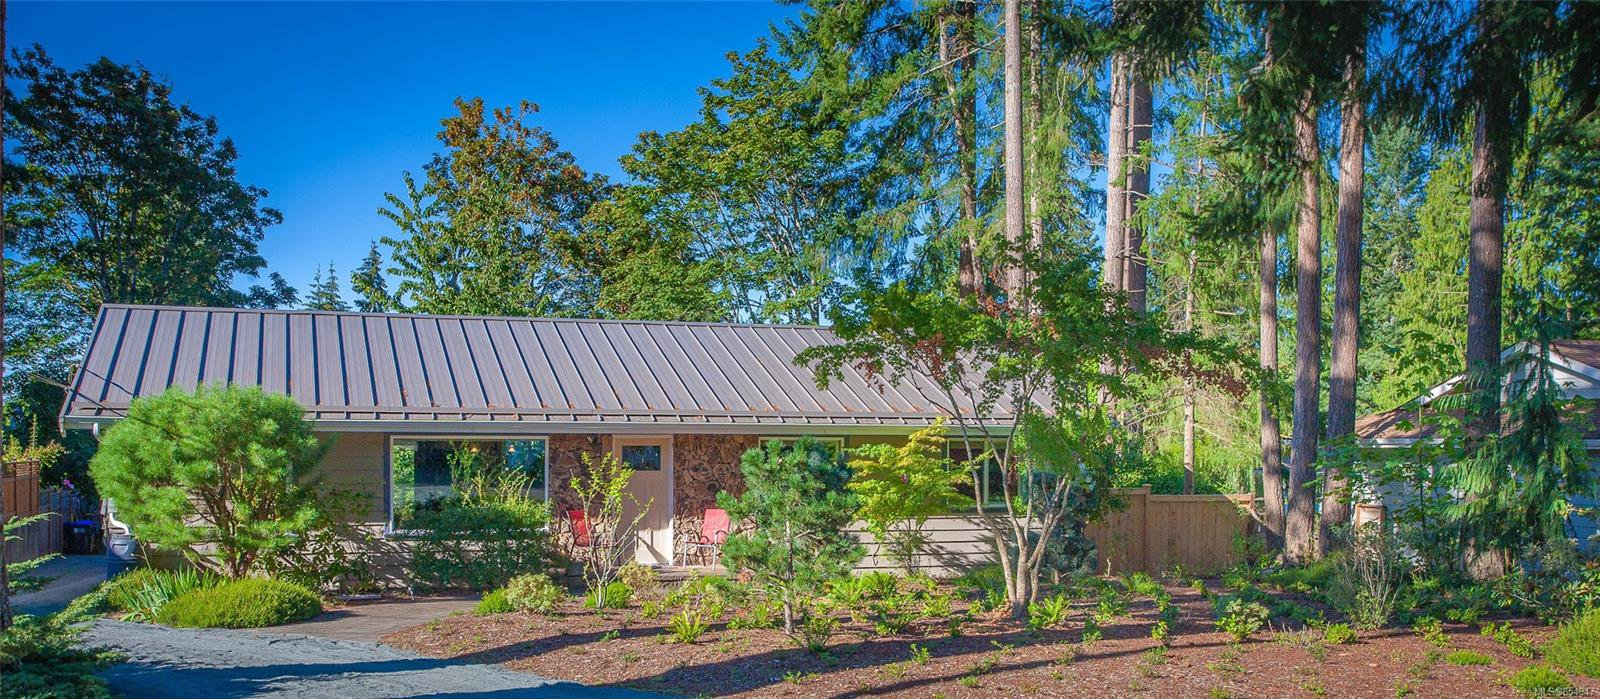 Main Photo: 389 Dorset Rd in : PQ Qualicum Beach Single Family Detached for sale (Parksville/Qualicum)  : MLS®# 854947